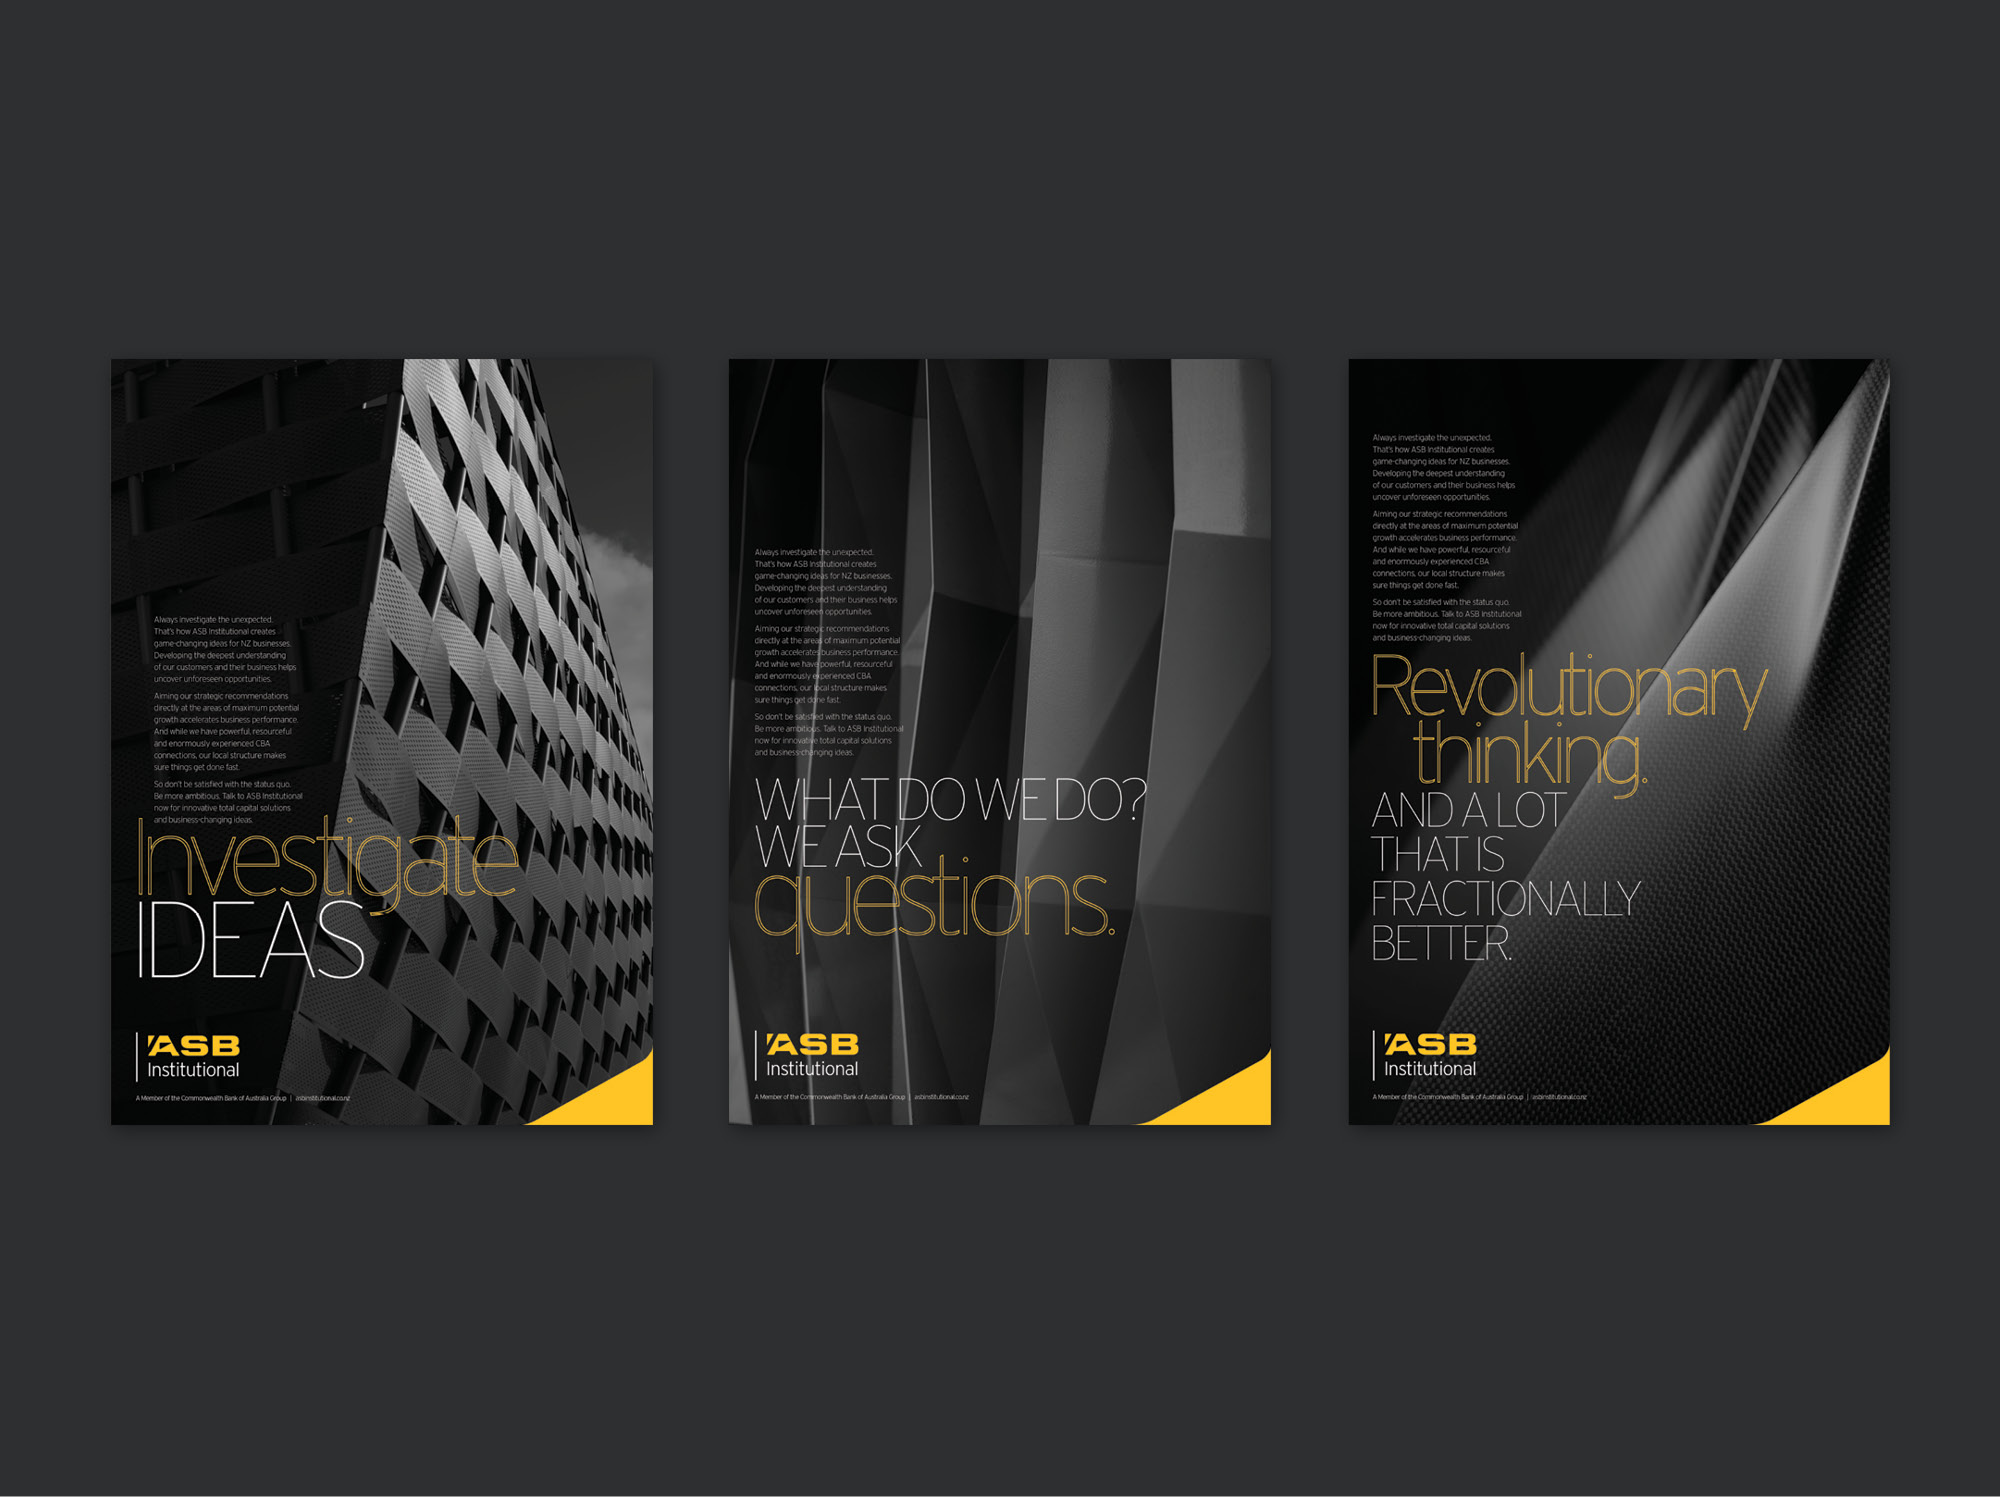 onfire design asb bank institutional branding collateral graphic design 2